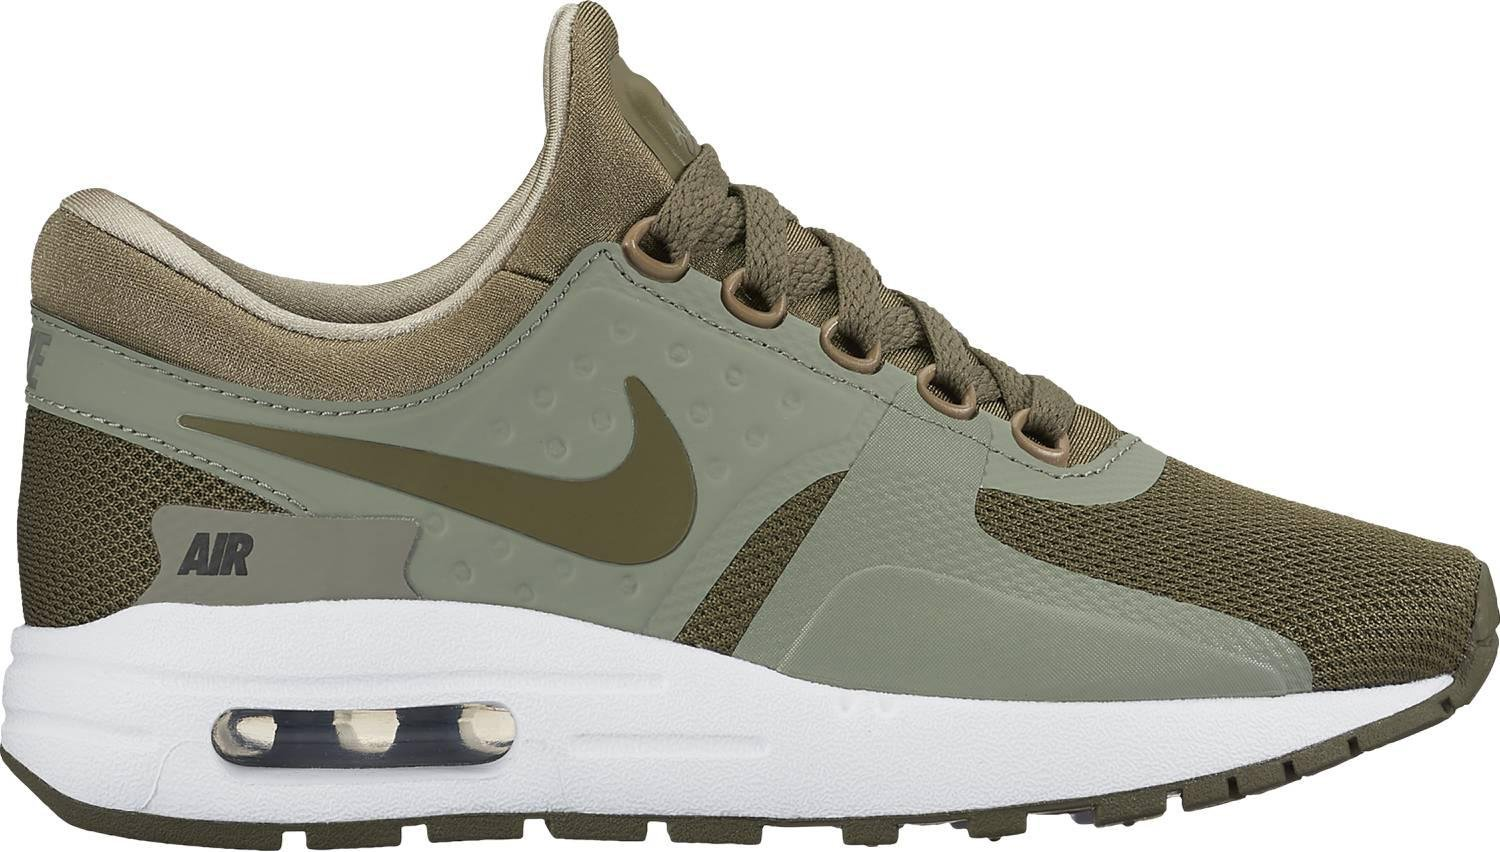 Nike  Air Max Zero Essential GS Running Shoe B0059DAYMC US 6.5Y|Olive Green